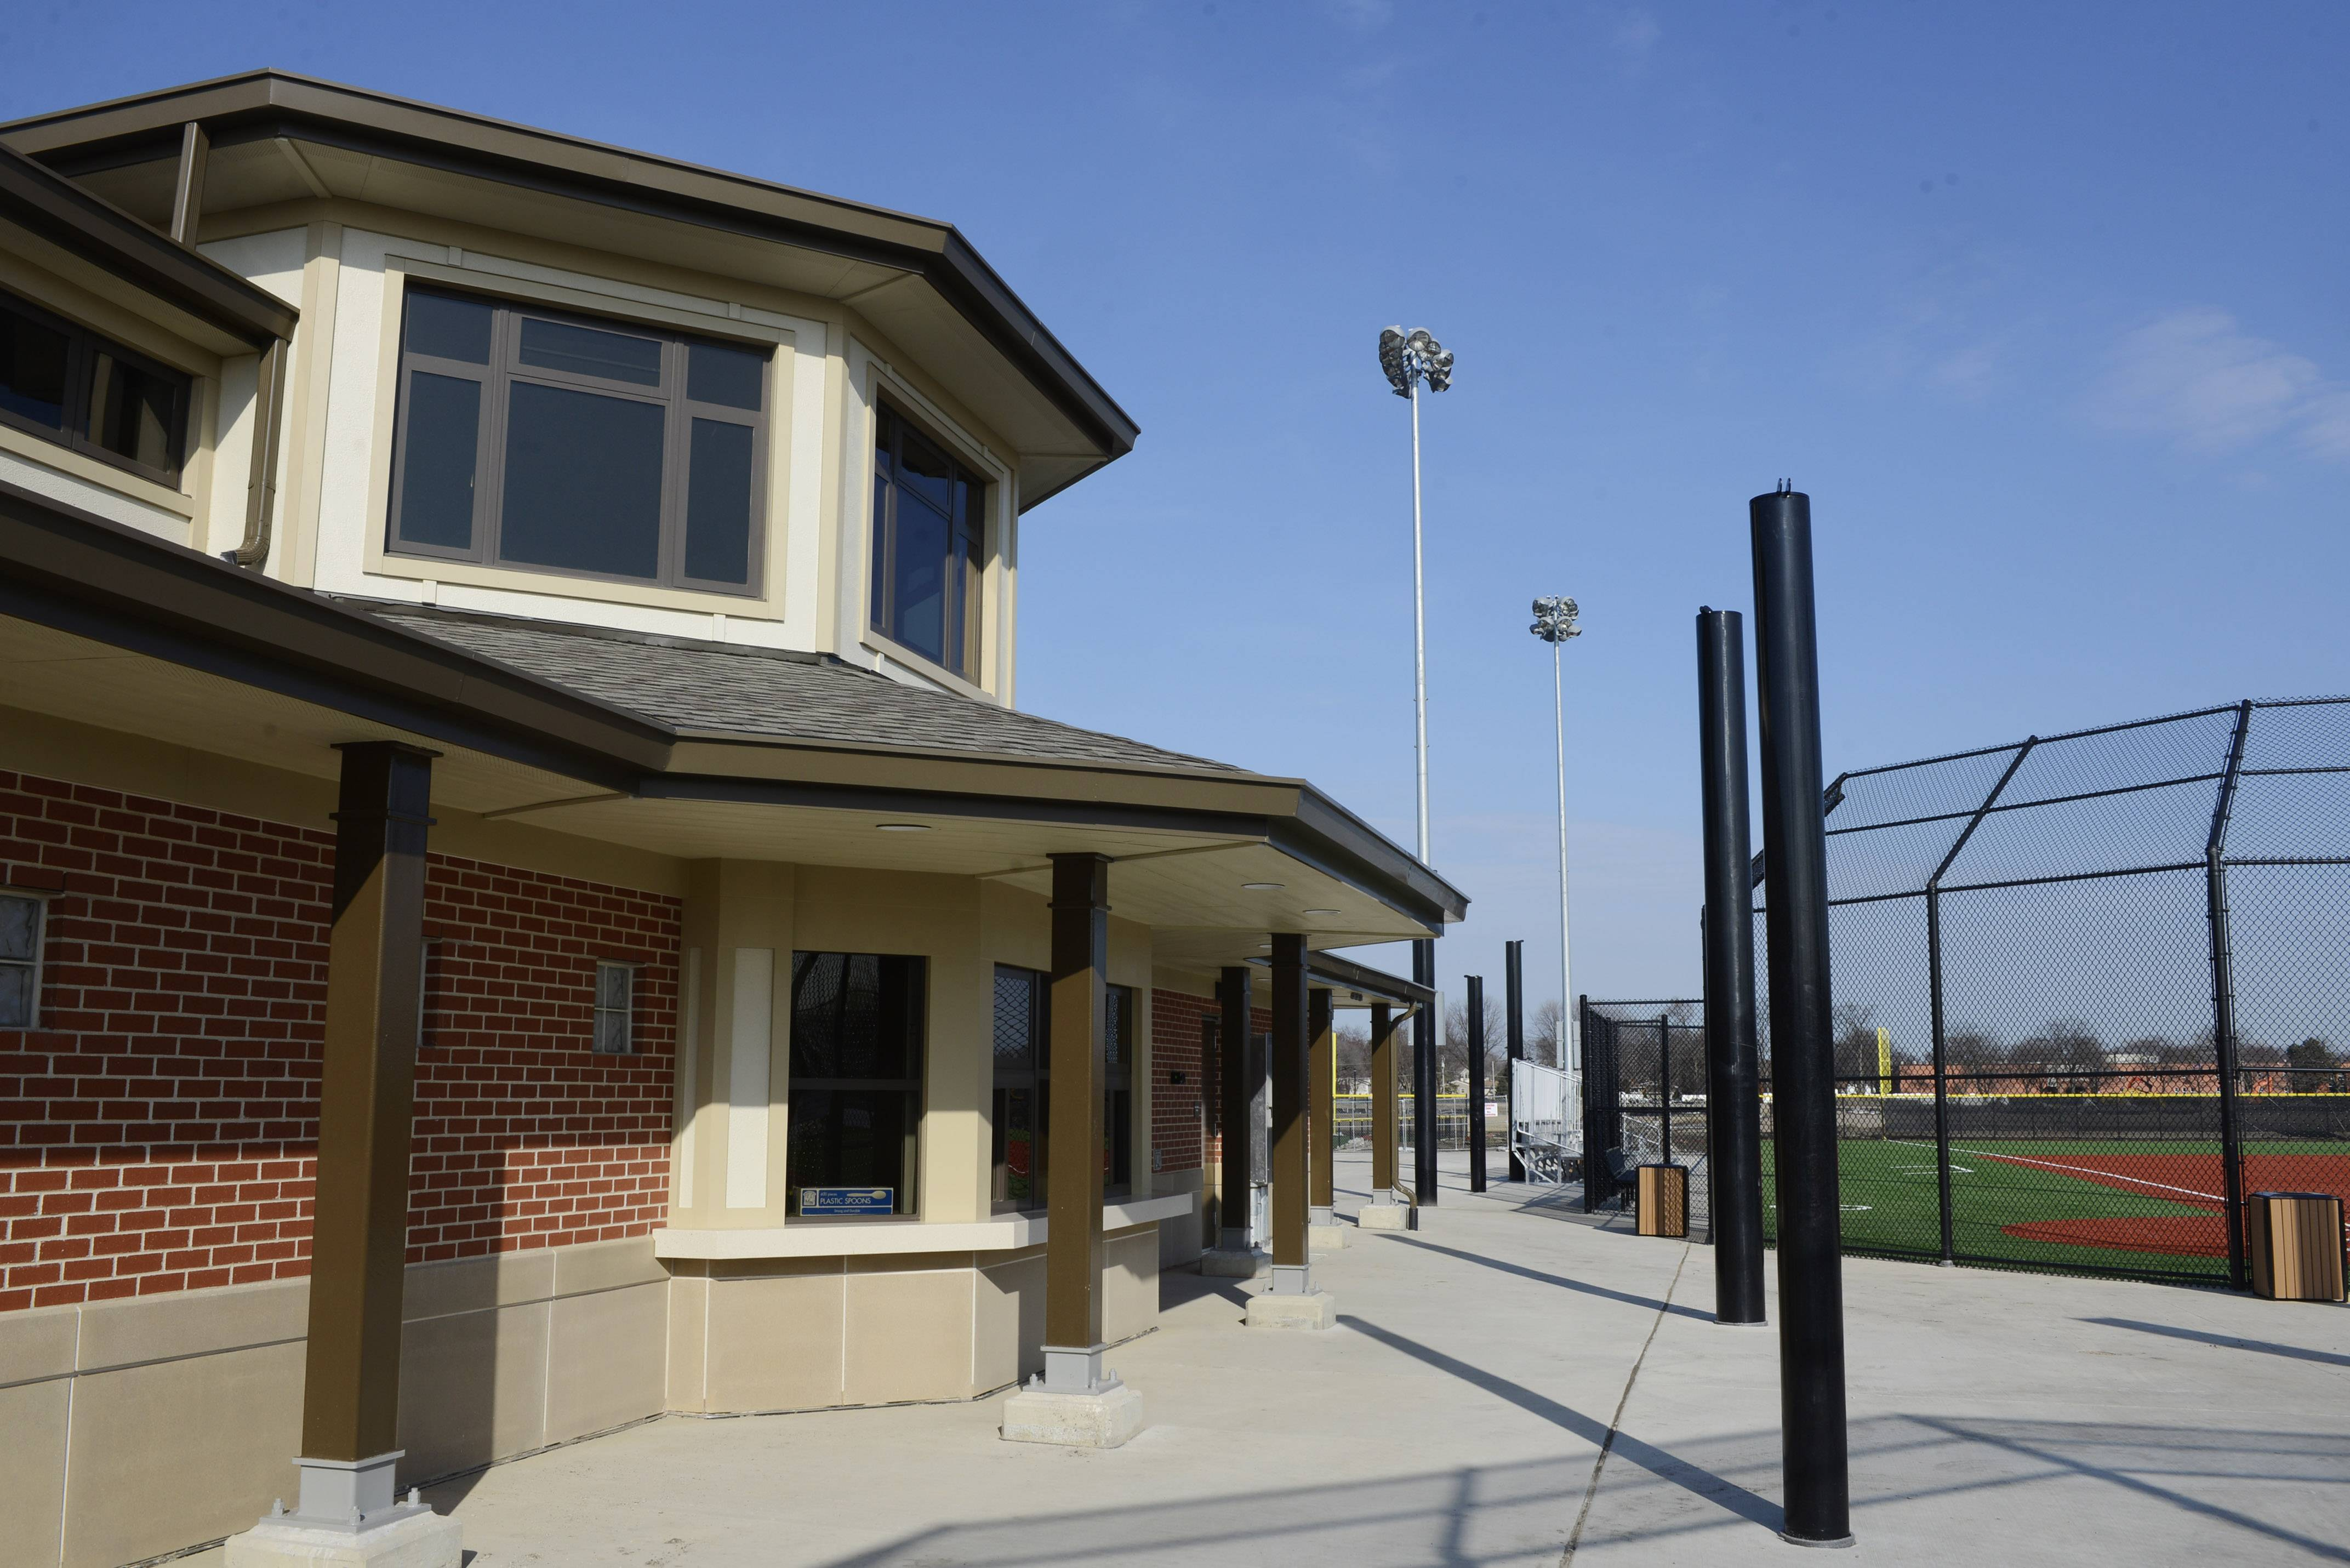 Despite last month's vote rejecting beer sales at the Heritage Park athletic complex's new concession stand, Wheeling officials indicated this week they are willing to reconsider their stance. The village board could take a second vote on the proposal as early as May 5.